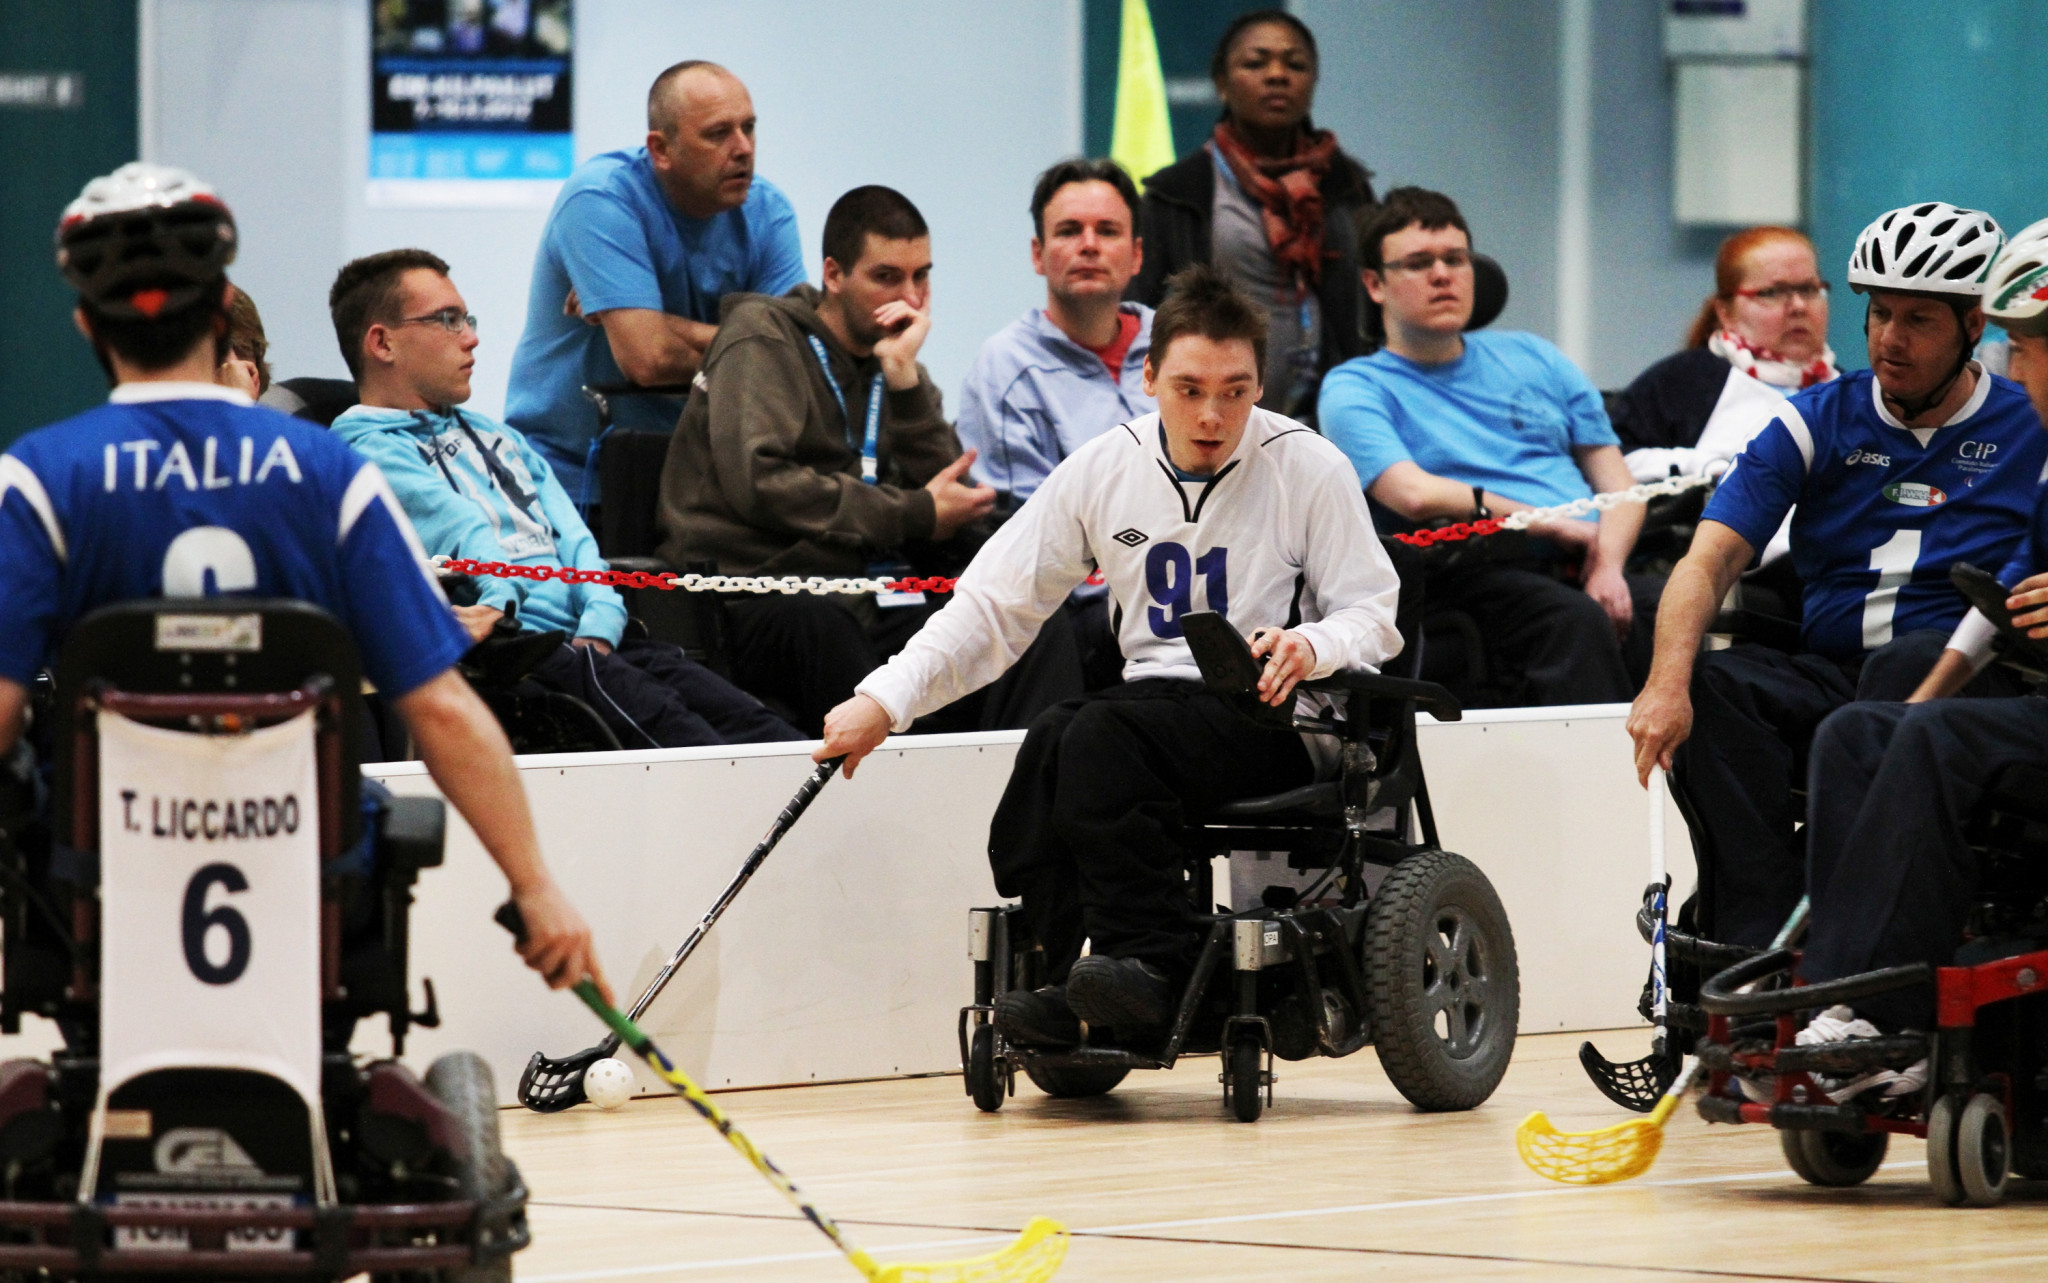 Powerchair Hockey European Championships cancelled due to COVID-19 pandemic